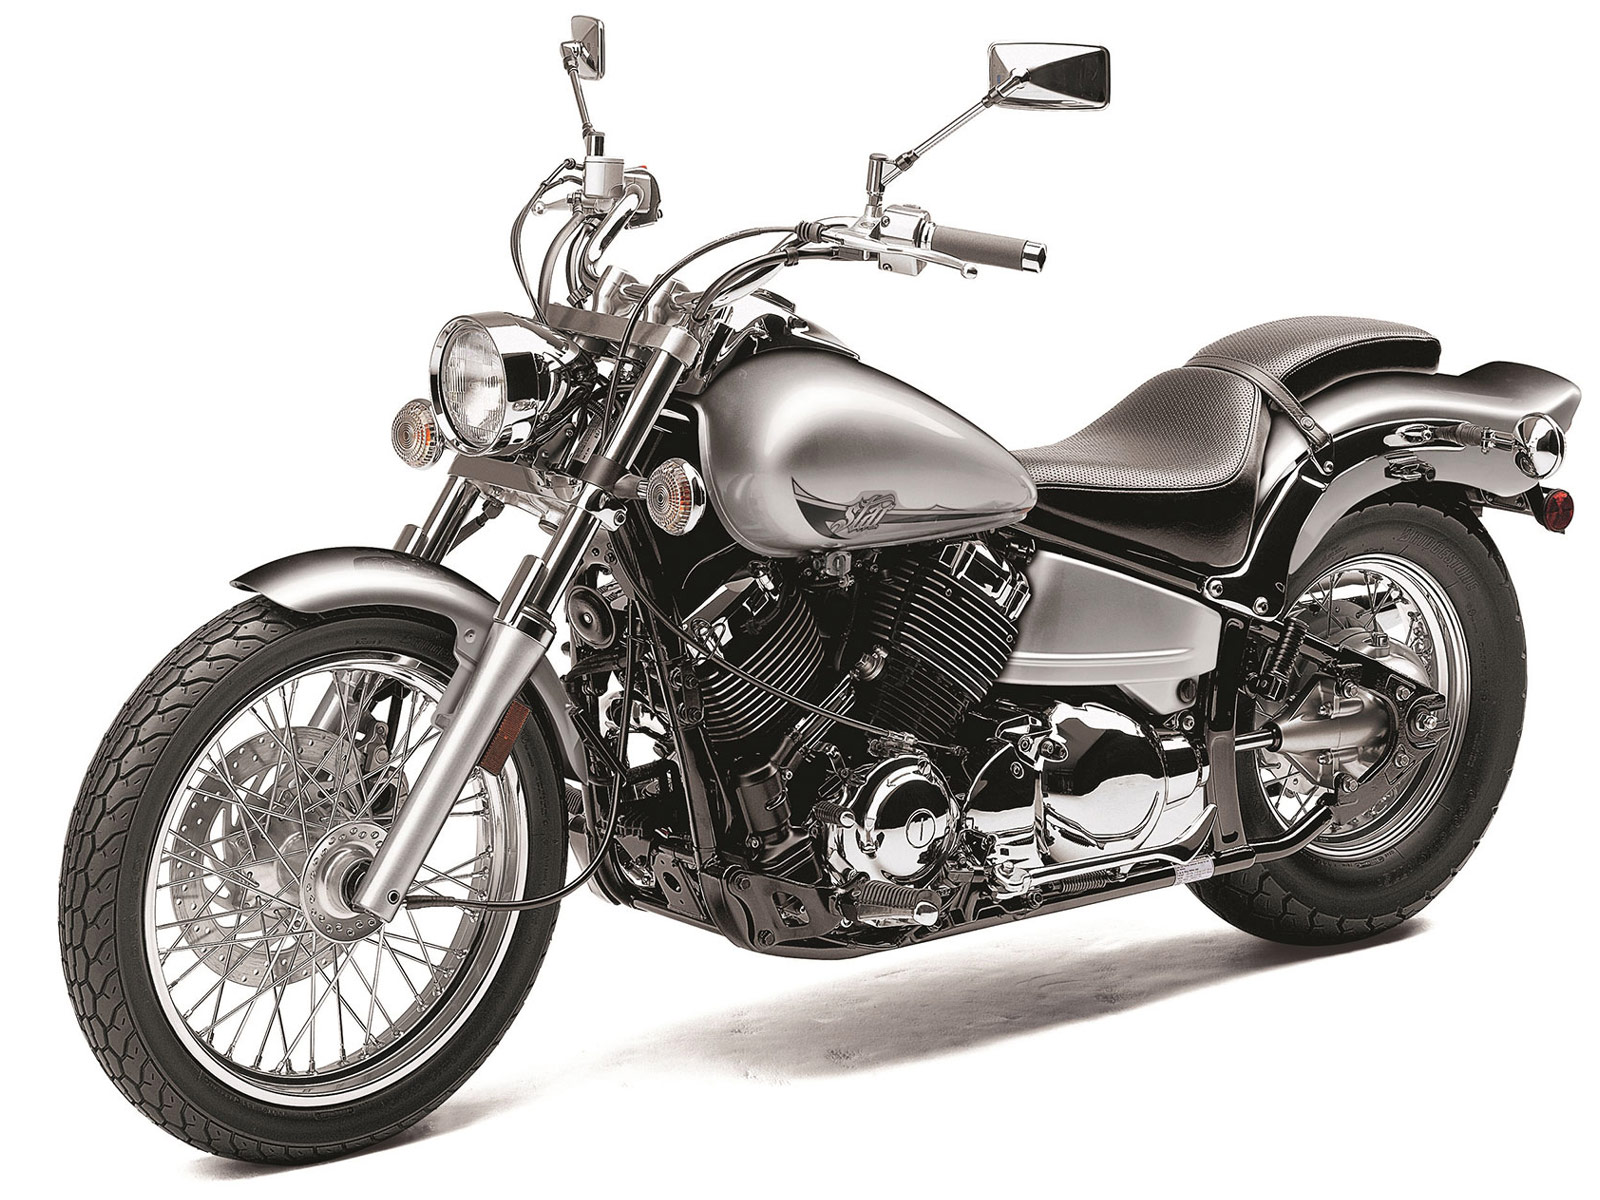 2014 yamaha v star 650 custom pictures review specifications insurance information. Black Bedroom Furniture Sets. Home Design Ideas